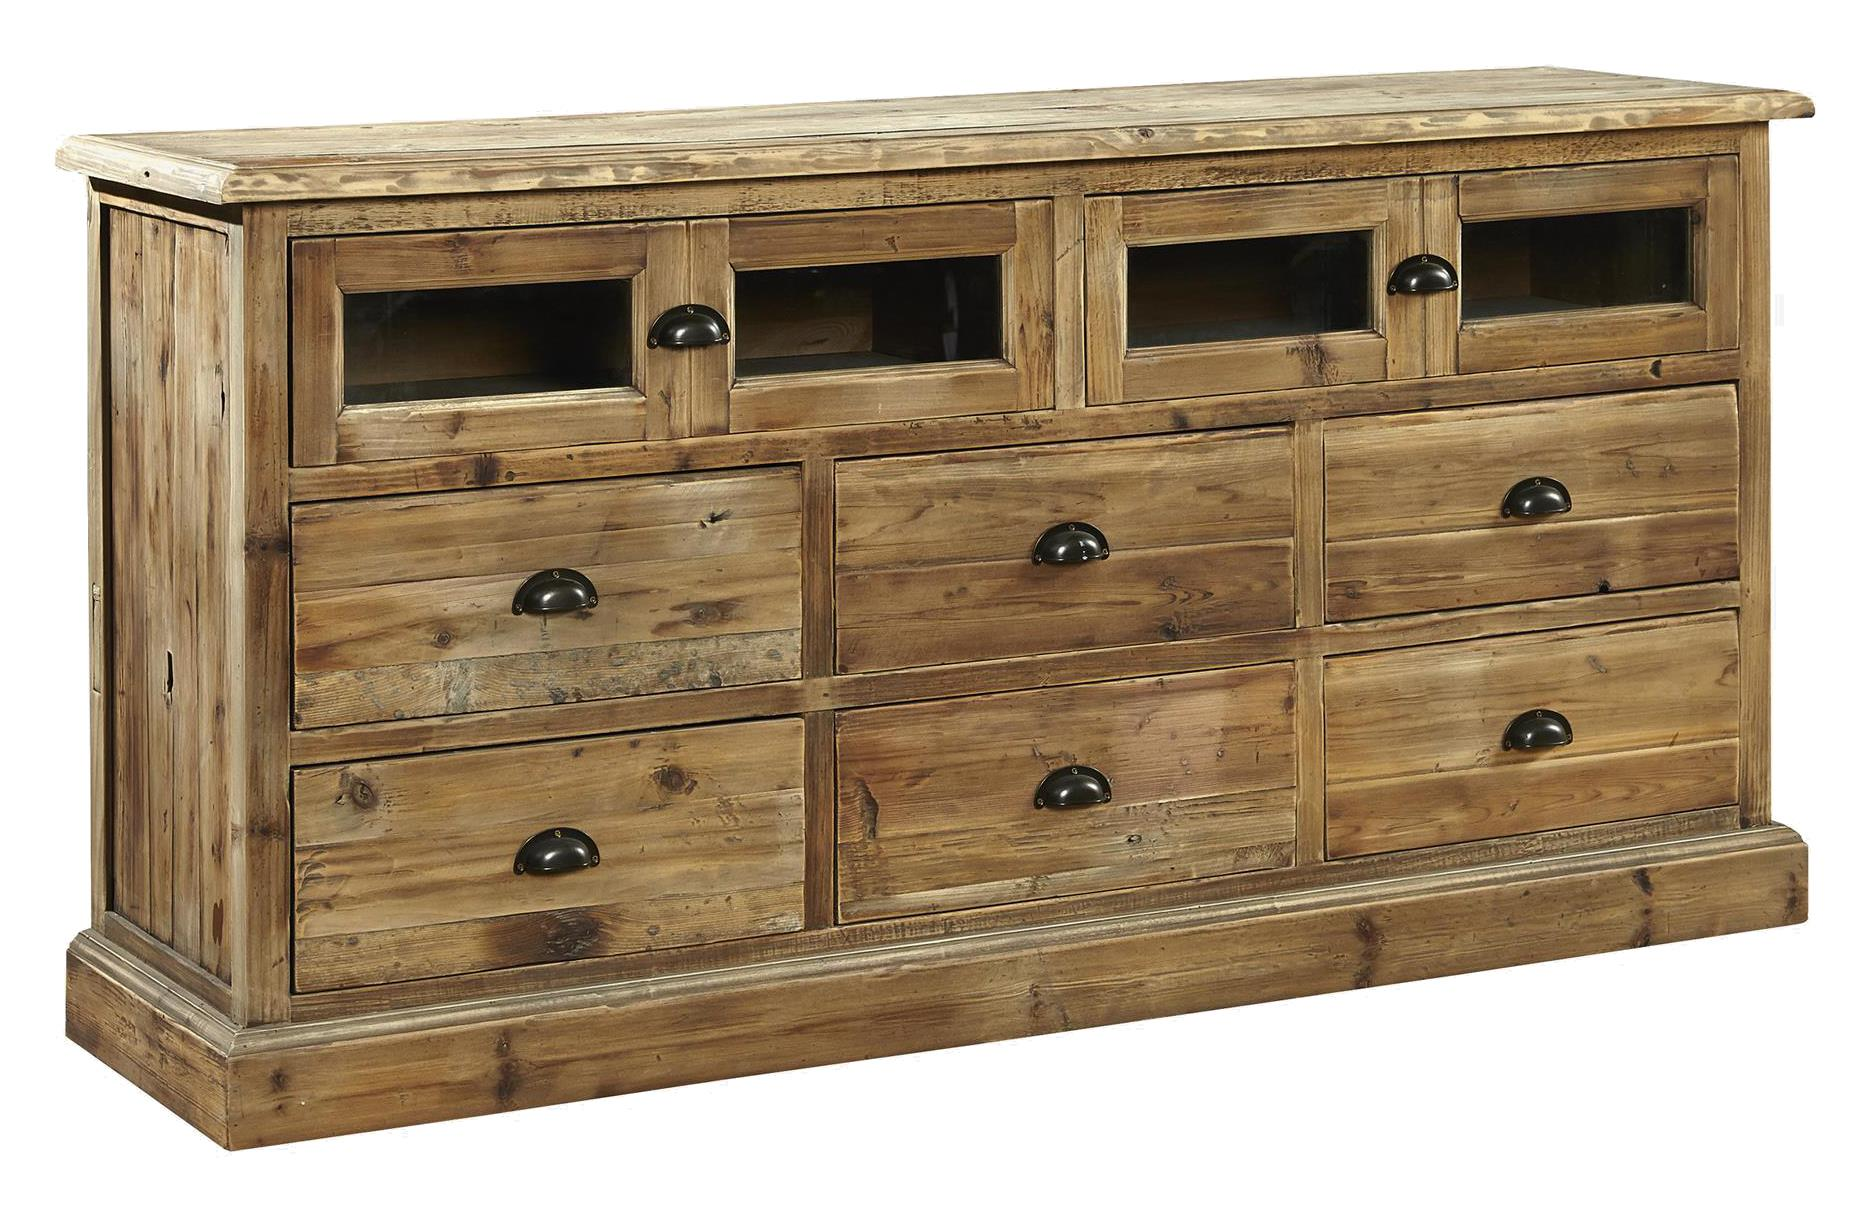 Furniture Classics Accents Old Fir Entertainment Unit - Item Number: 71321